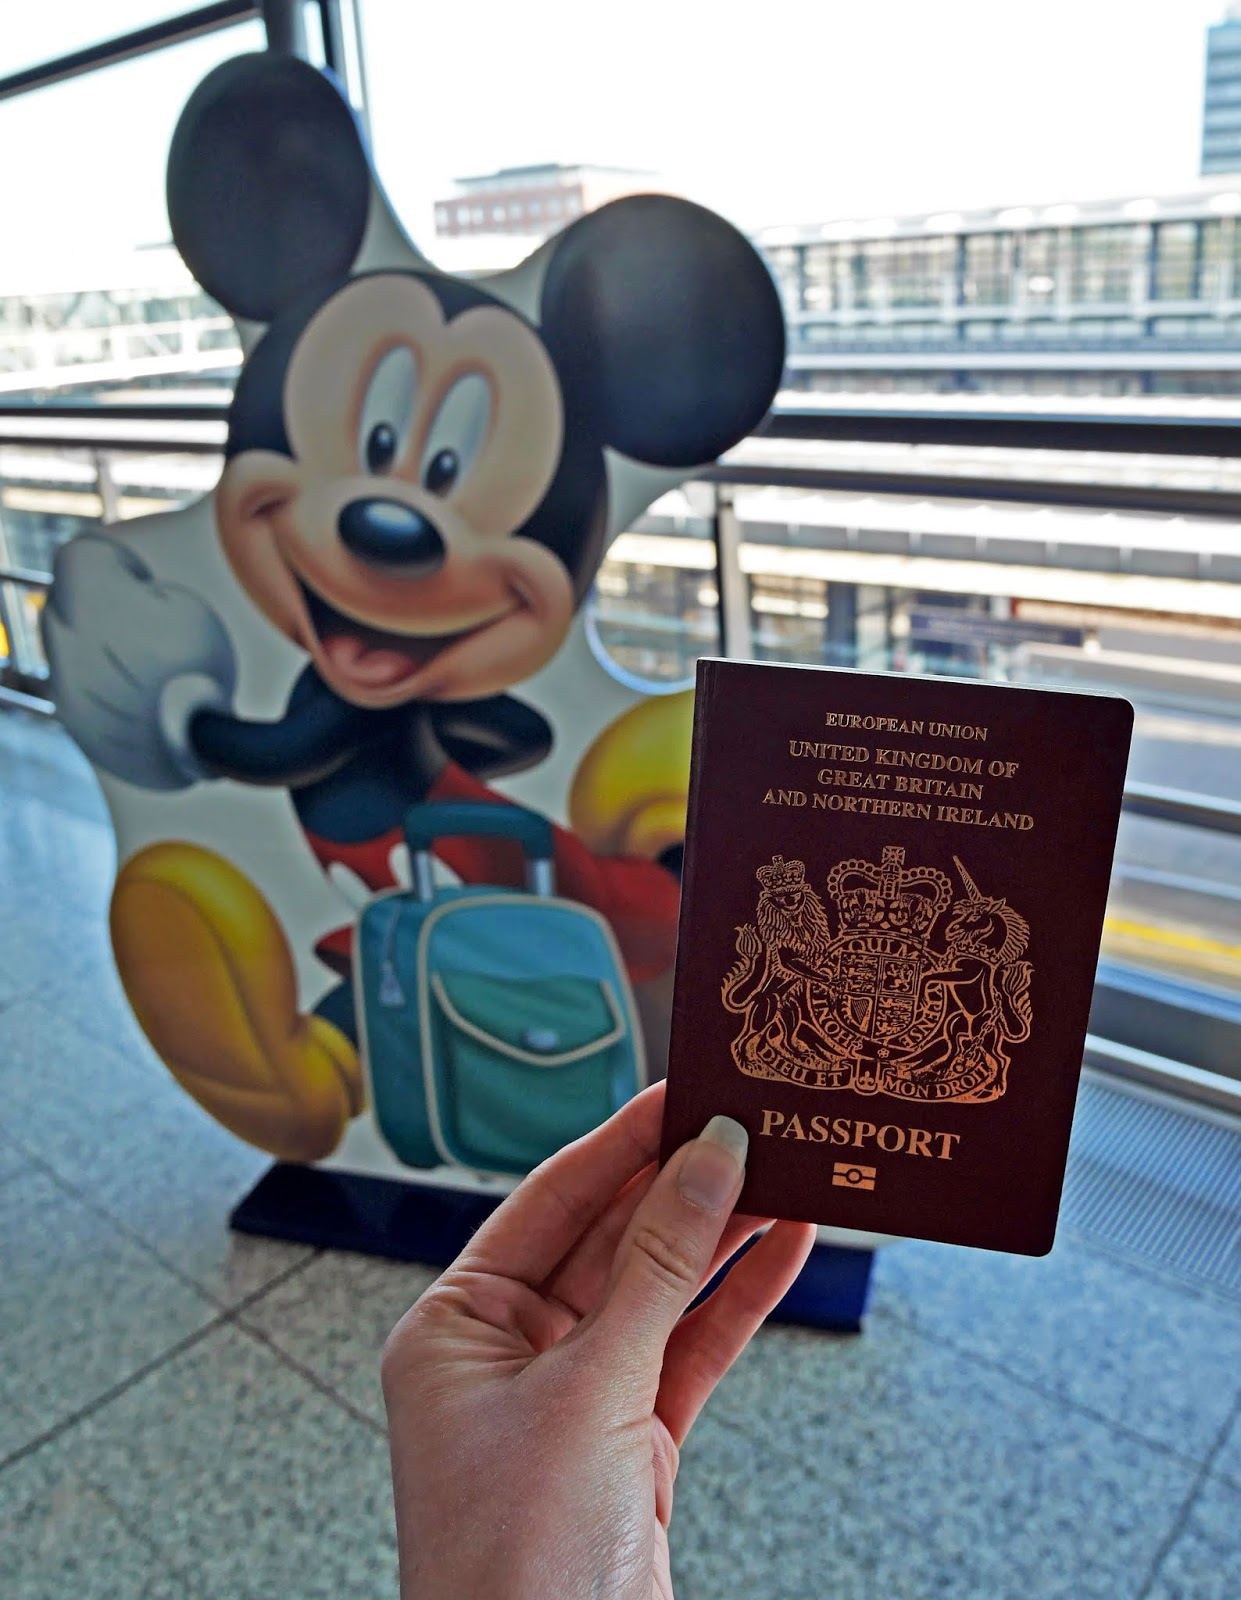 Taking the Eurostar to Disneyland Paris from Ashford International